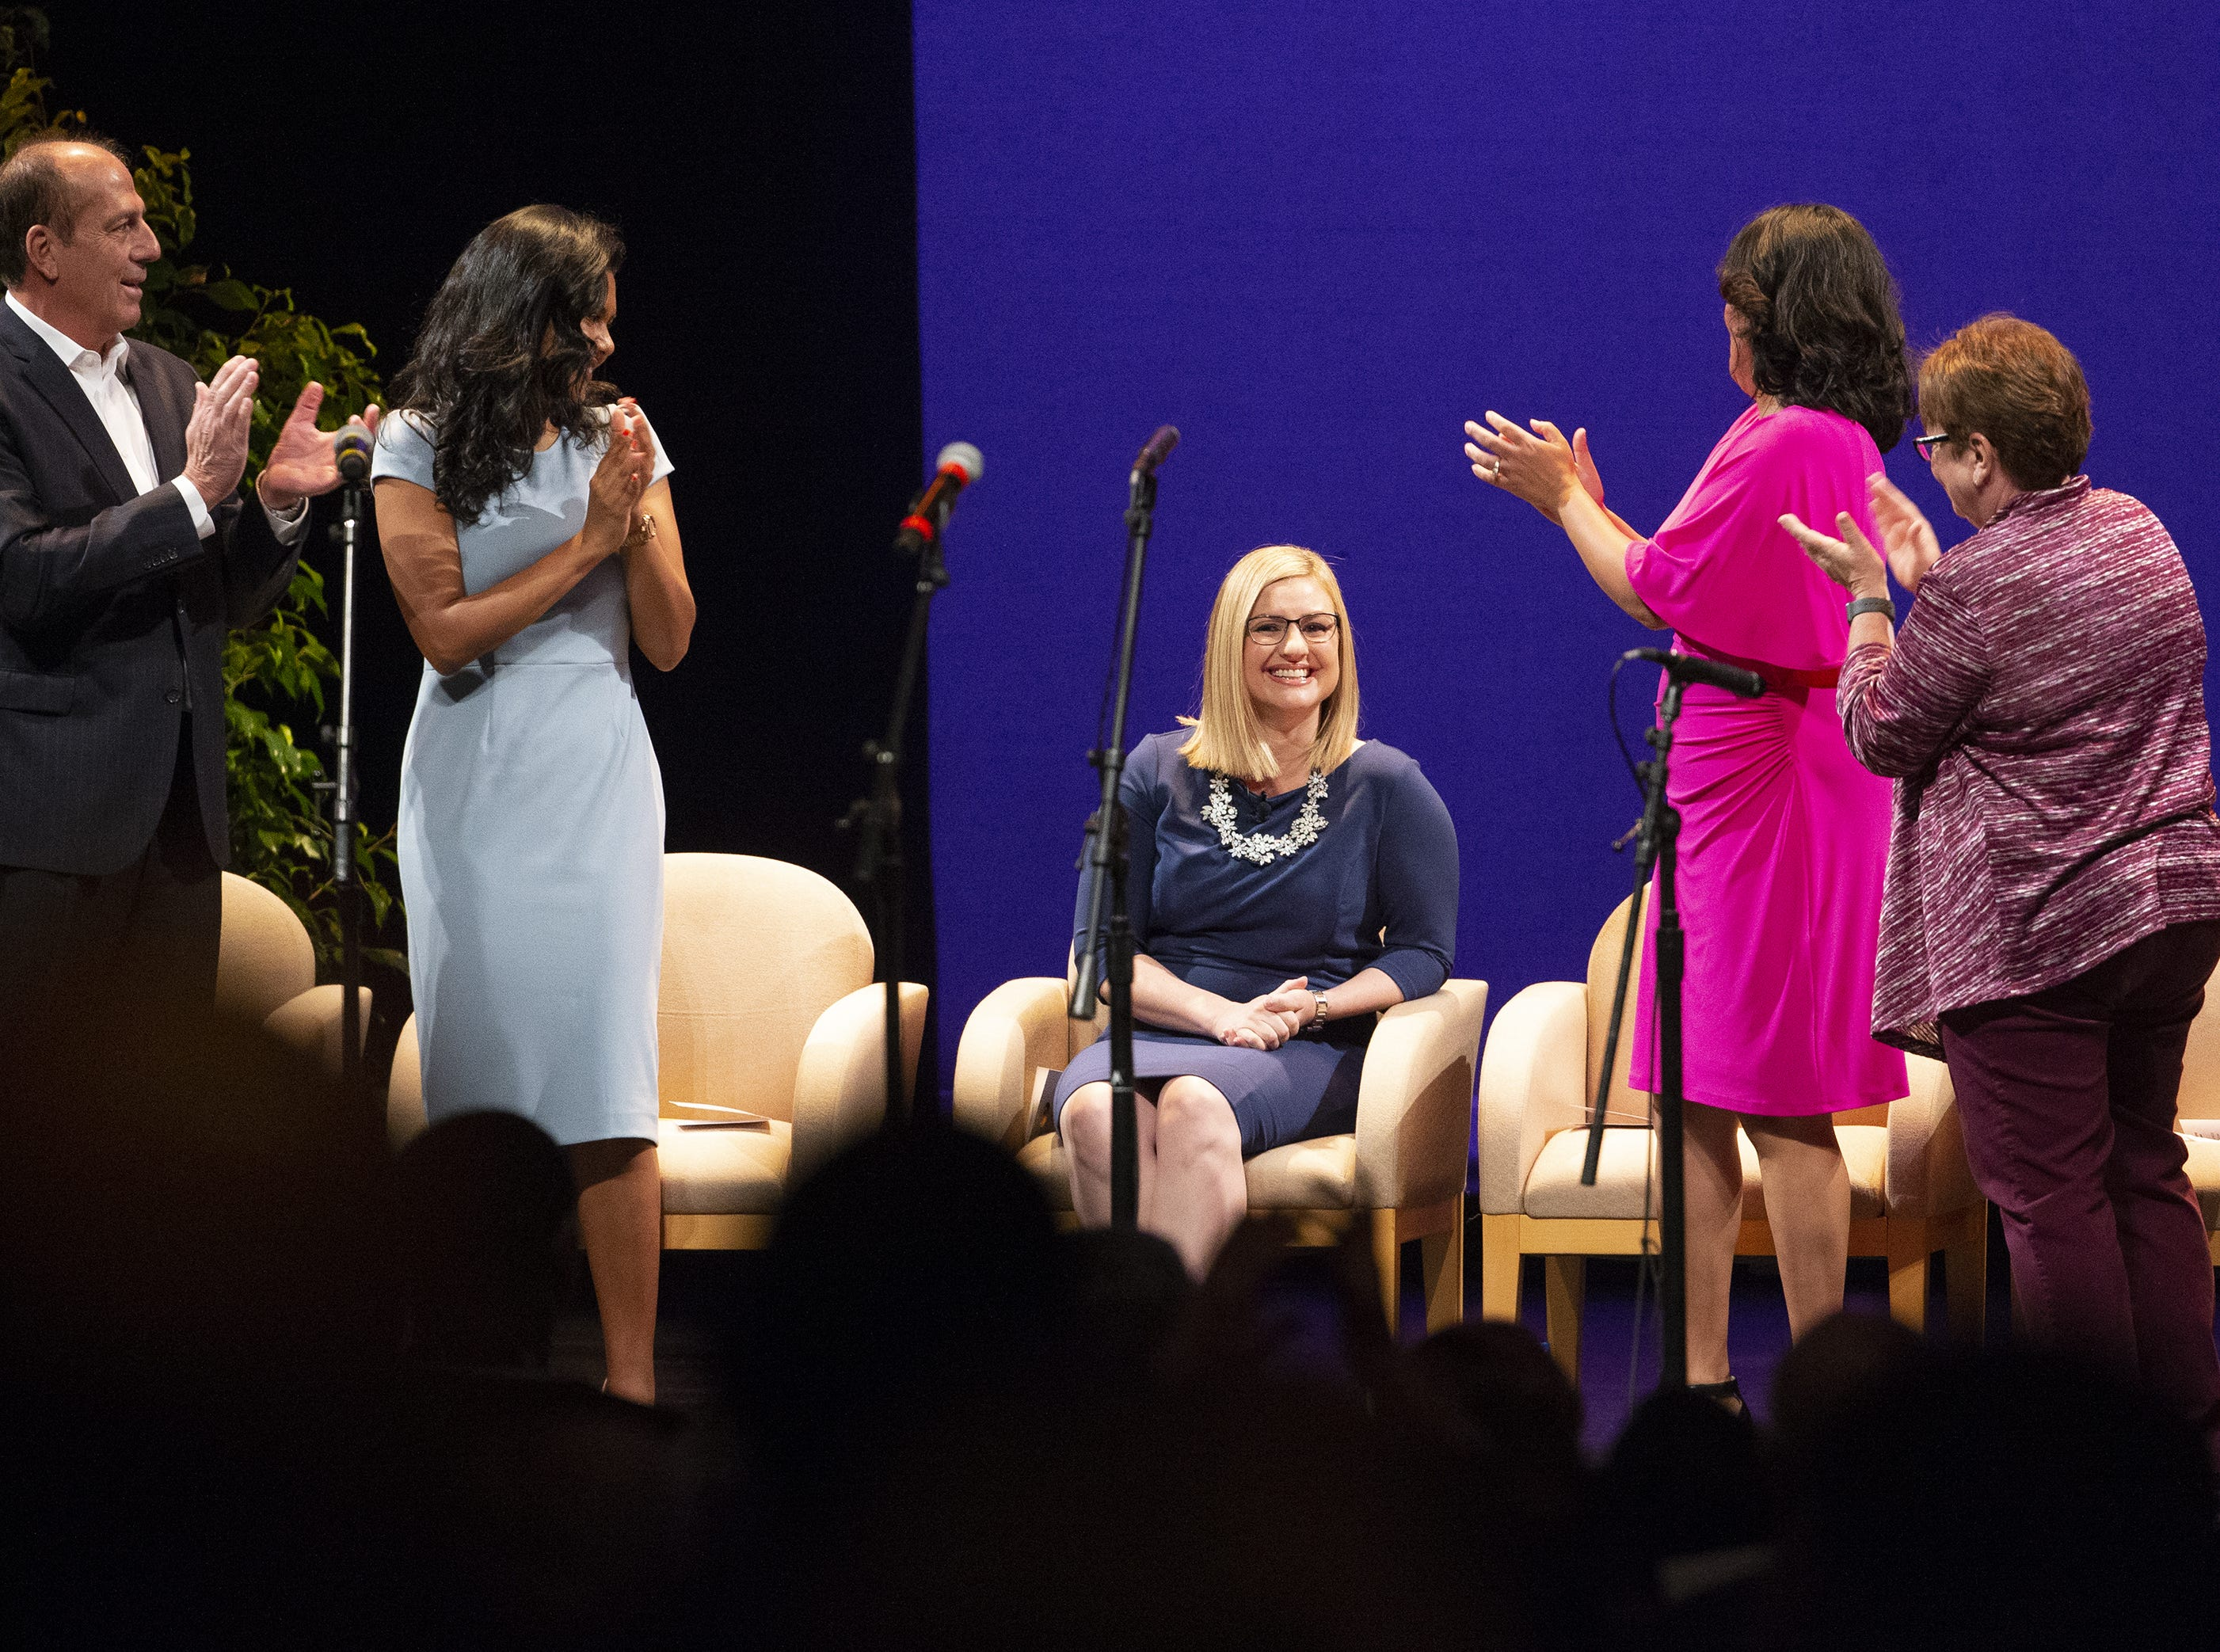 Kate Gallego is applauded as she takes the stage for her inauguration ceremony as the new mayor of Phoenix on March 21 at the Orpheum Theatre in Phoenix, Ariz.